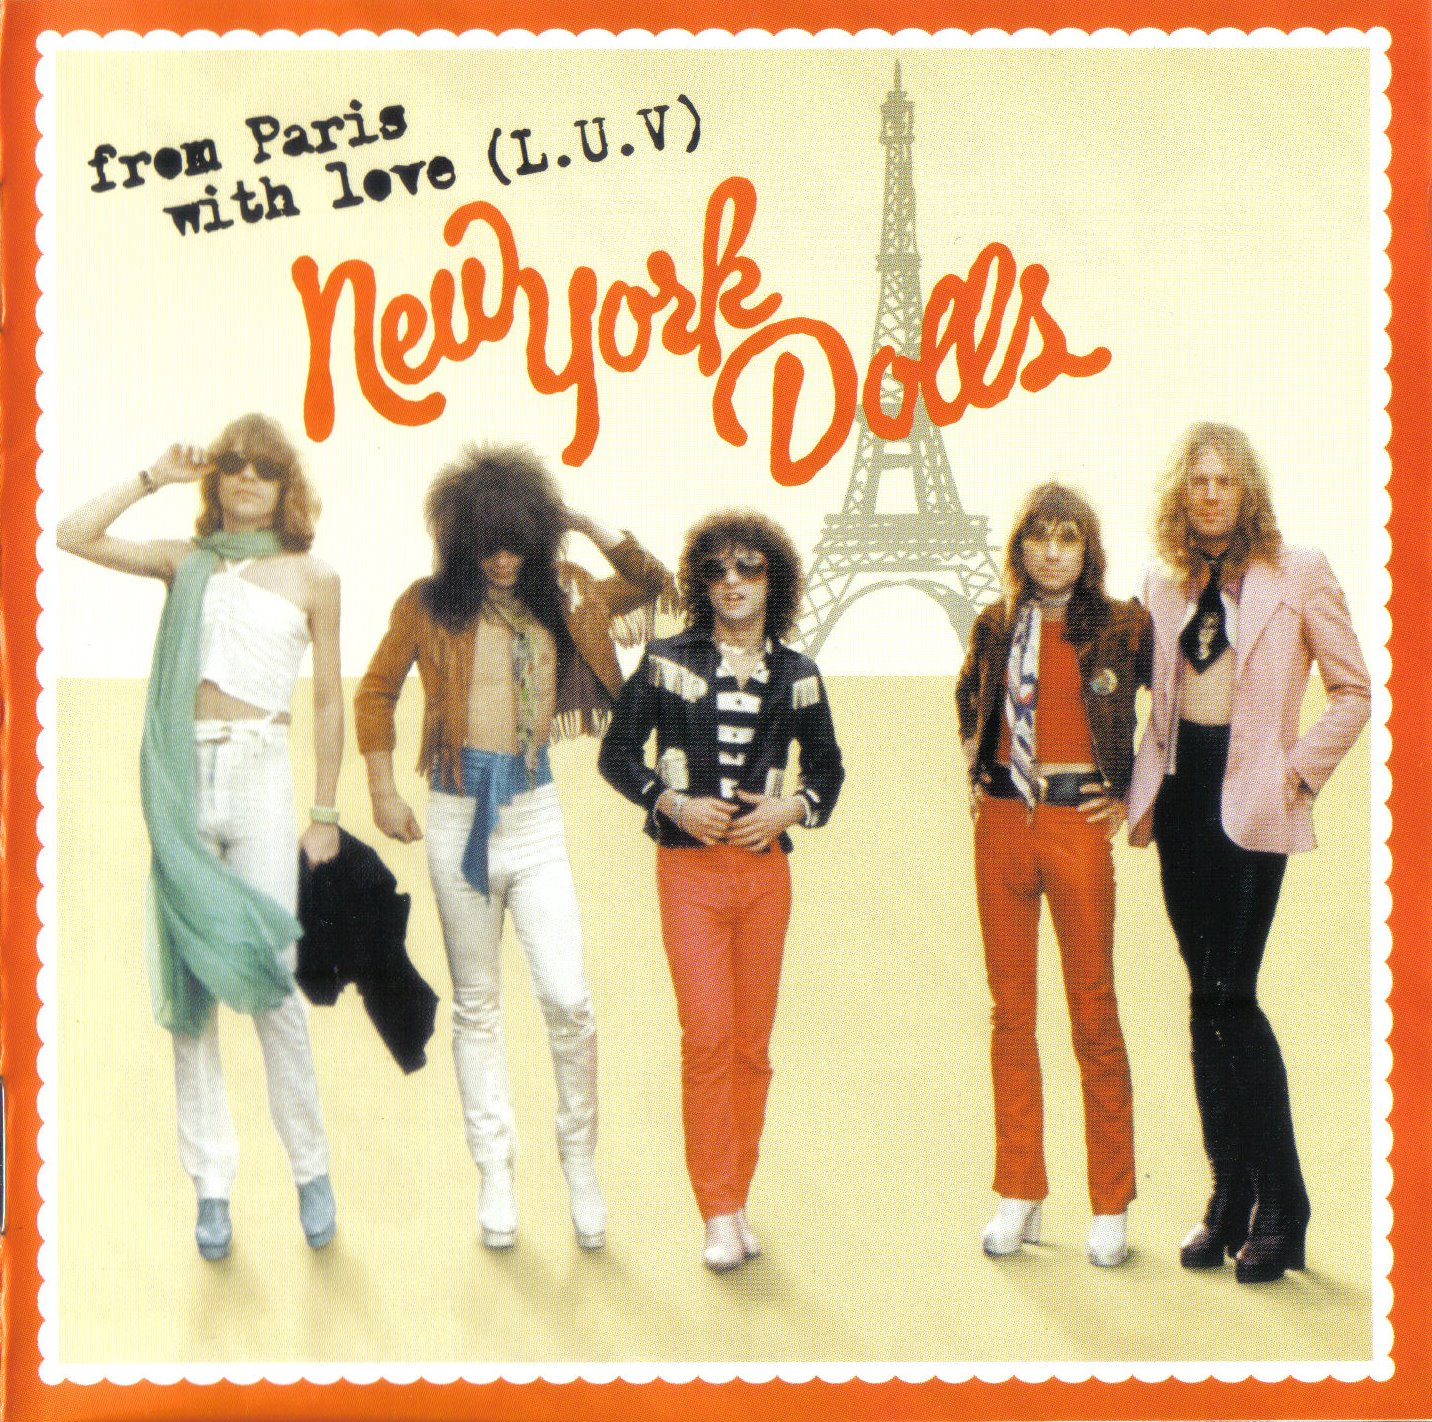 New york dolls from paris with love l u v reupped by request